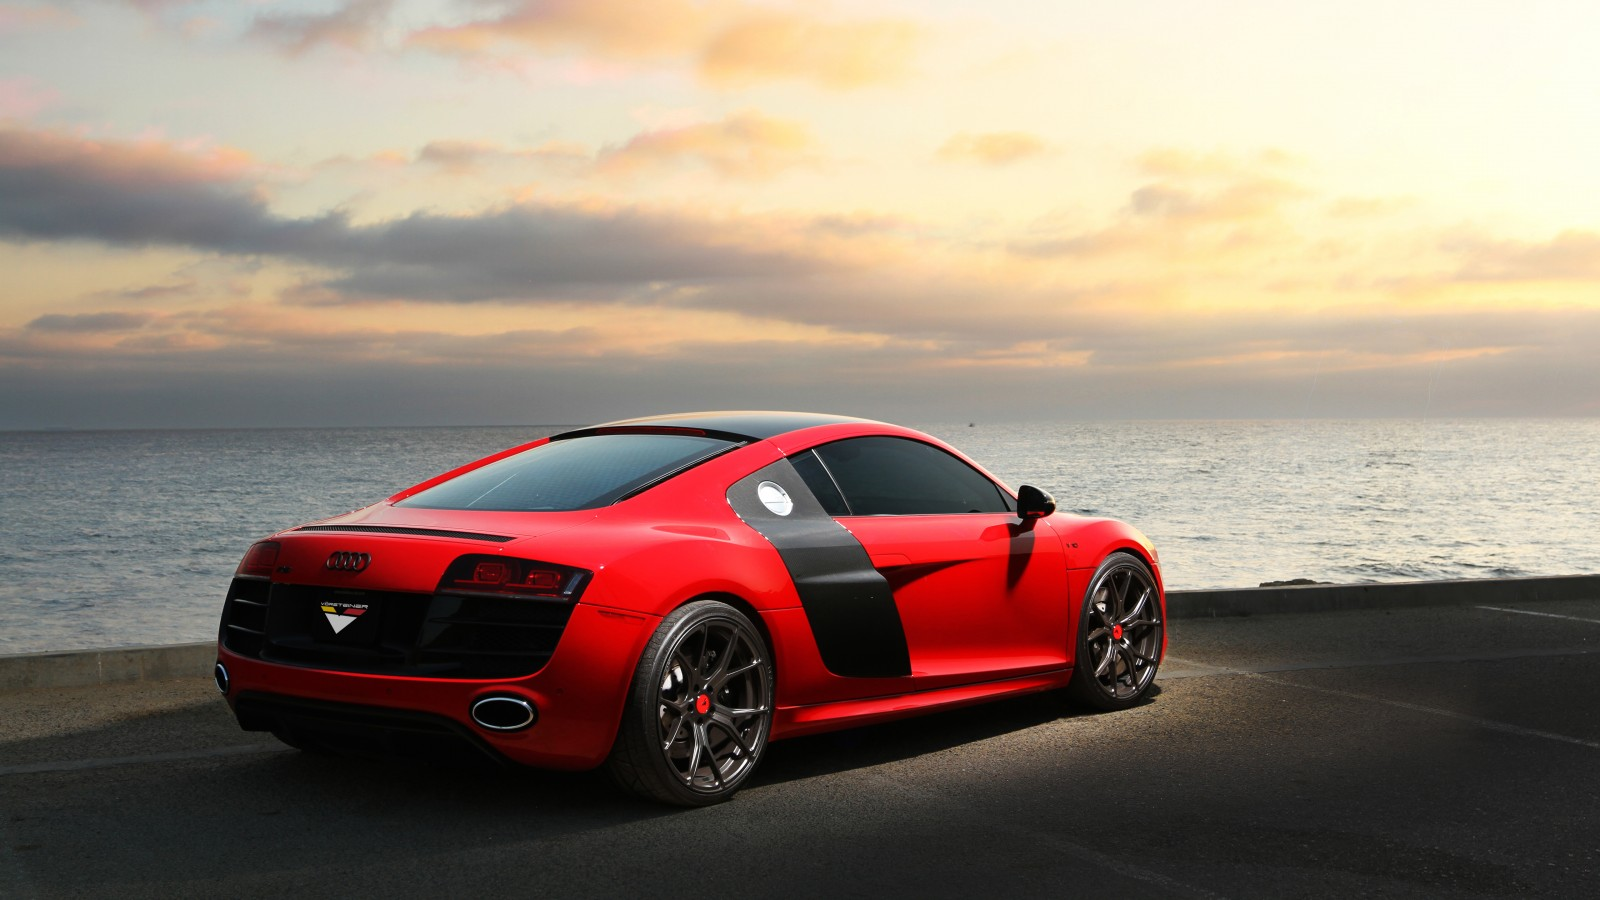 Vorsteiner Audi R8 Carbon Graphite 5k 2 Wallpaper Hd Car